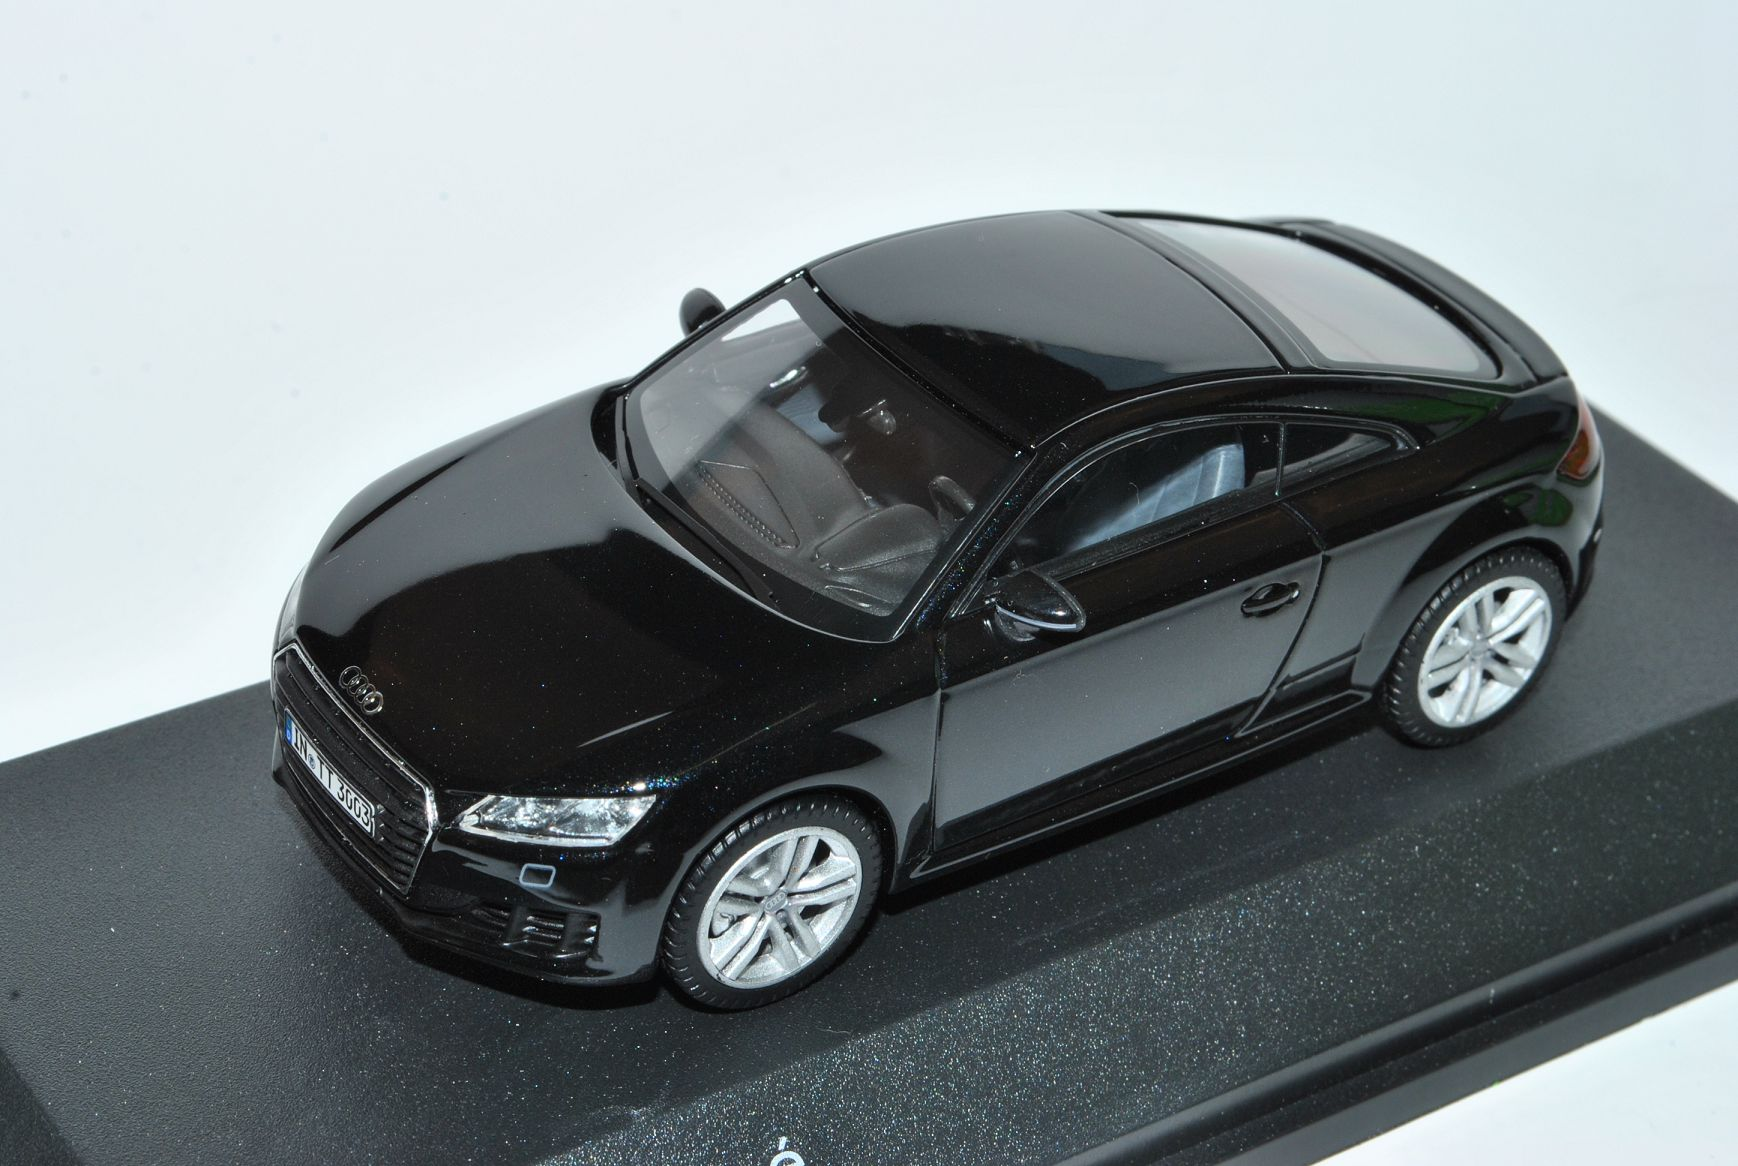 Generation Ab 2014 1//43 Kyosho Modell Auto mit ode.. Audi TT 8S Coupe Schwarz 3